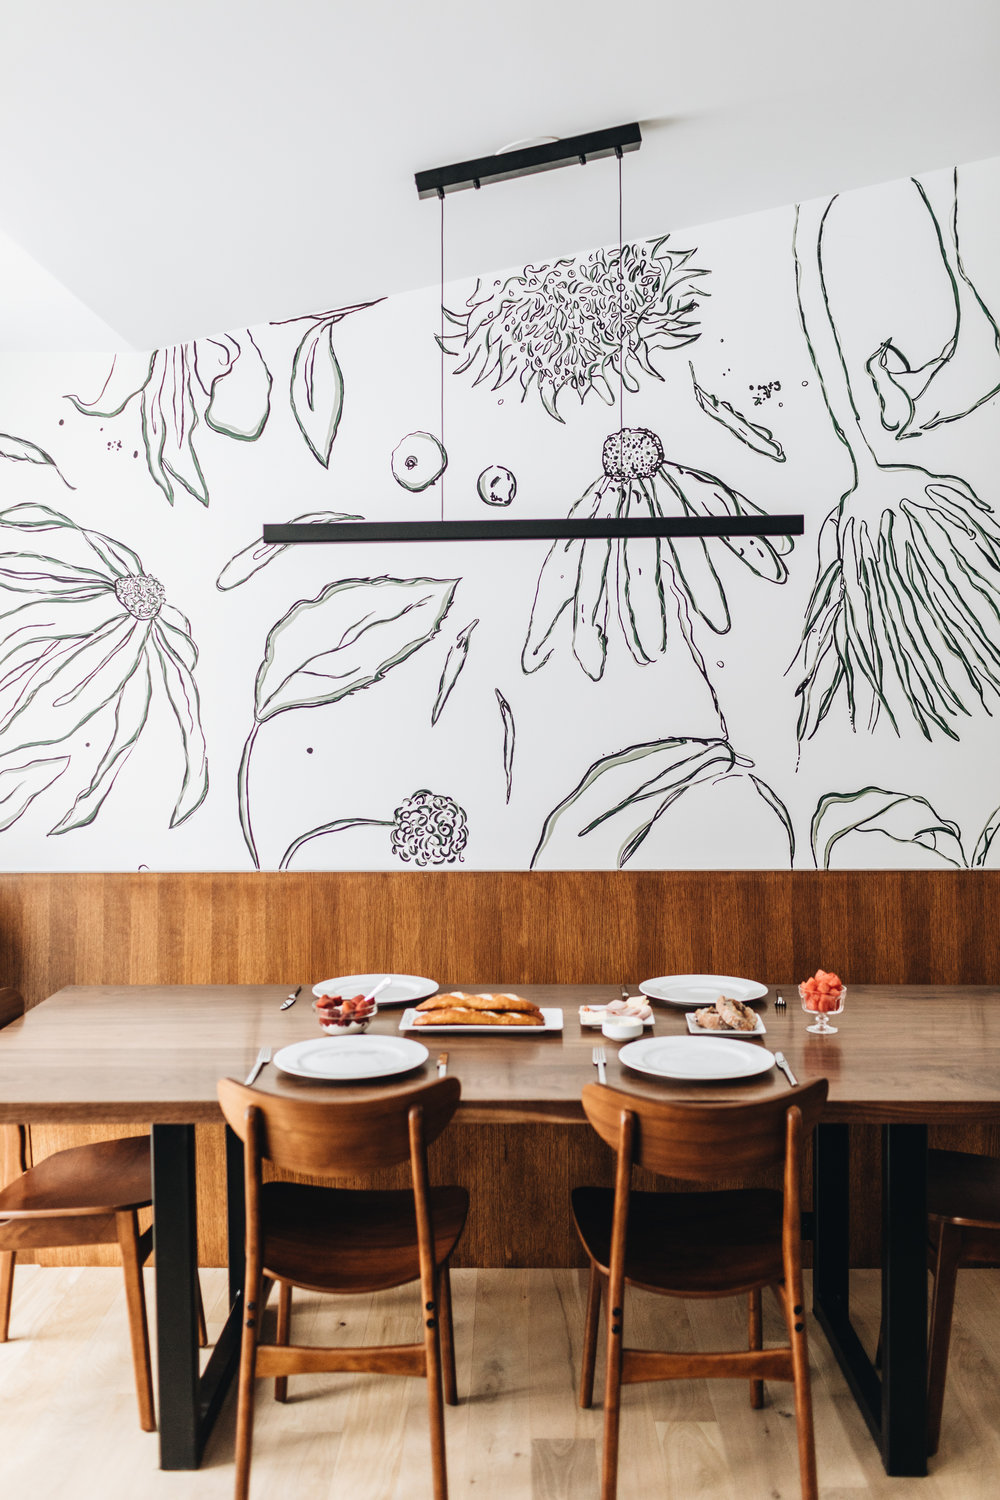 Custom floral wall mural by She She in dining space of St. Louis Park remodel by Christian Dean Architecture.